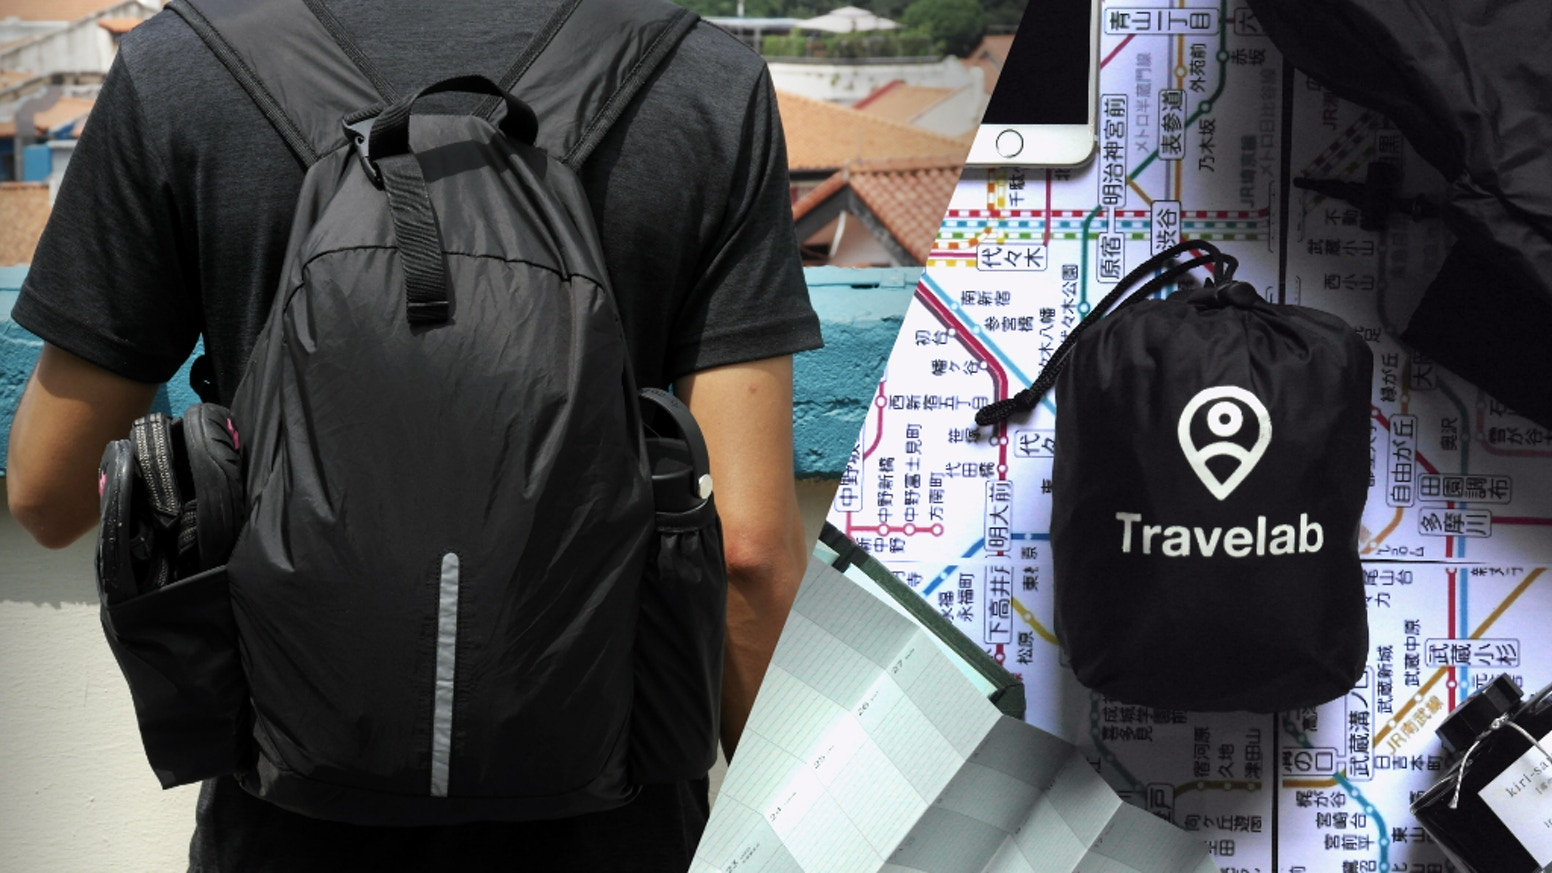 Freedom Pack | The First Packable Anti-Theft Travel Backpack  - $103,576 Raised |1,516 Backers